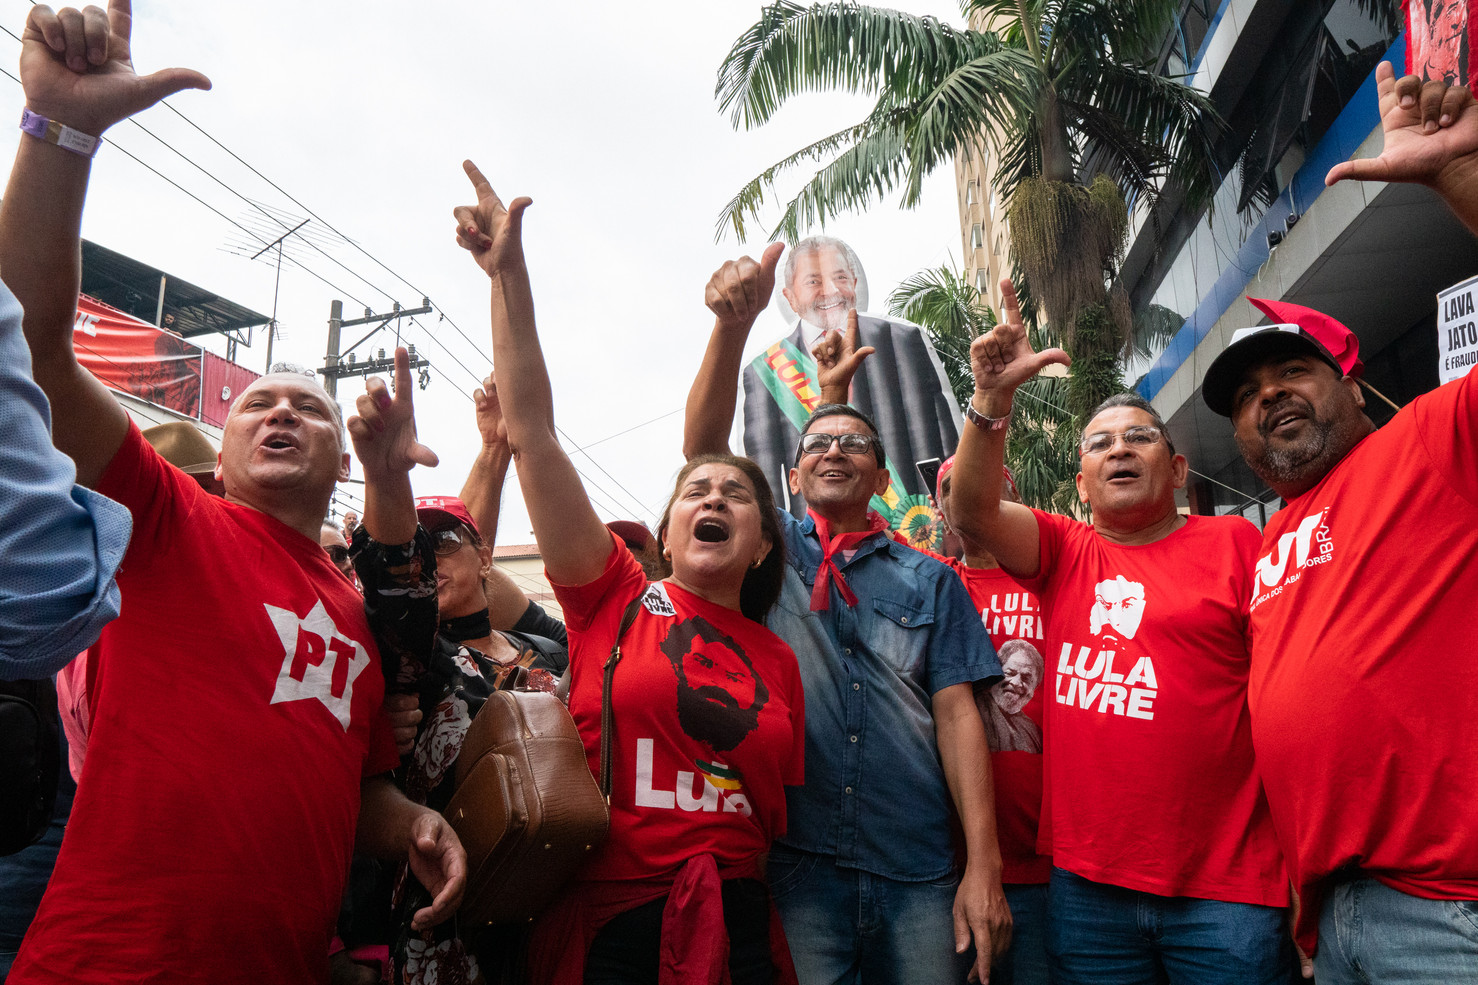 Former President Luiz Inacio Lula da Silva after being released from prison gave a speech and was cheered by thousands of his supporters in front of the ABC Metalworkers Union during an event organized by the Homeless Workers Movement and the Povo Sem Medo (Fearless People) Movement in São Bernardo do Campo, November 09, 2019.